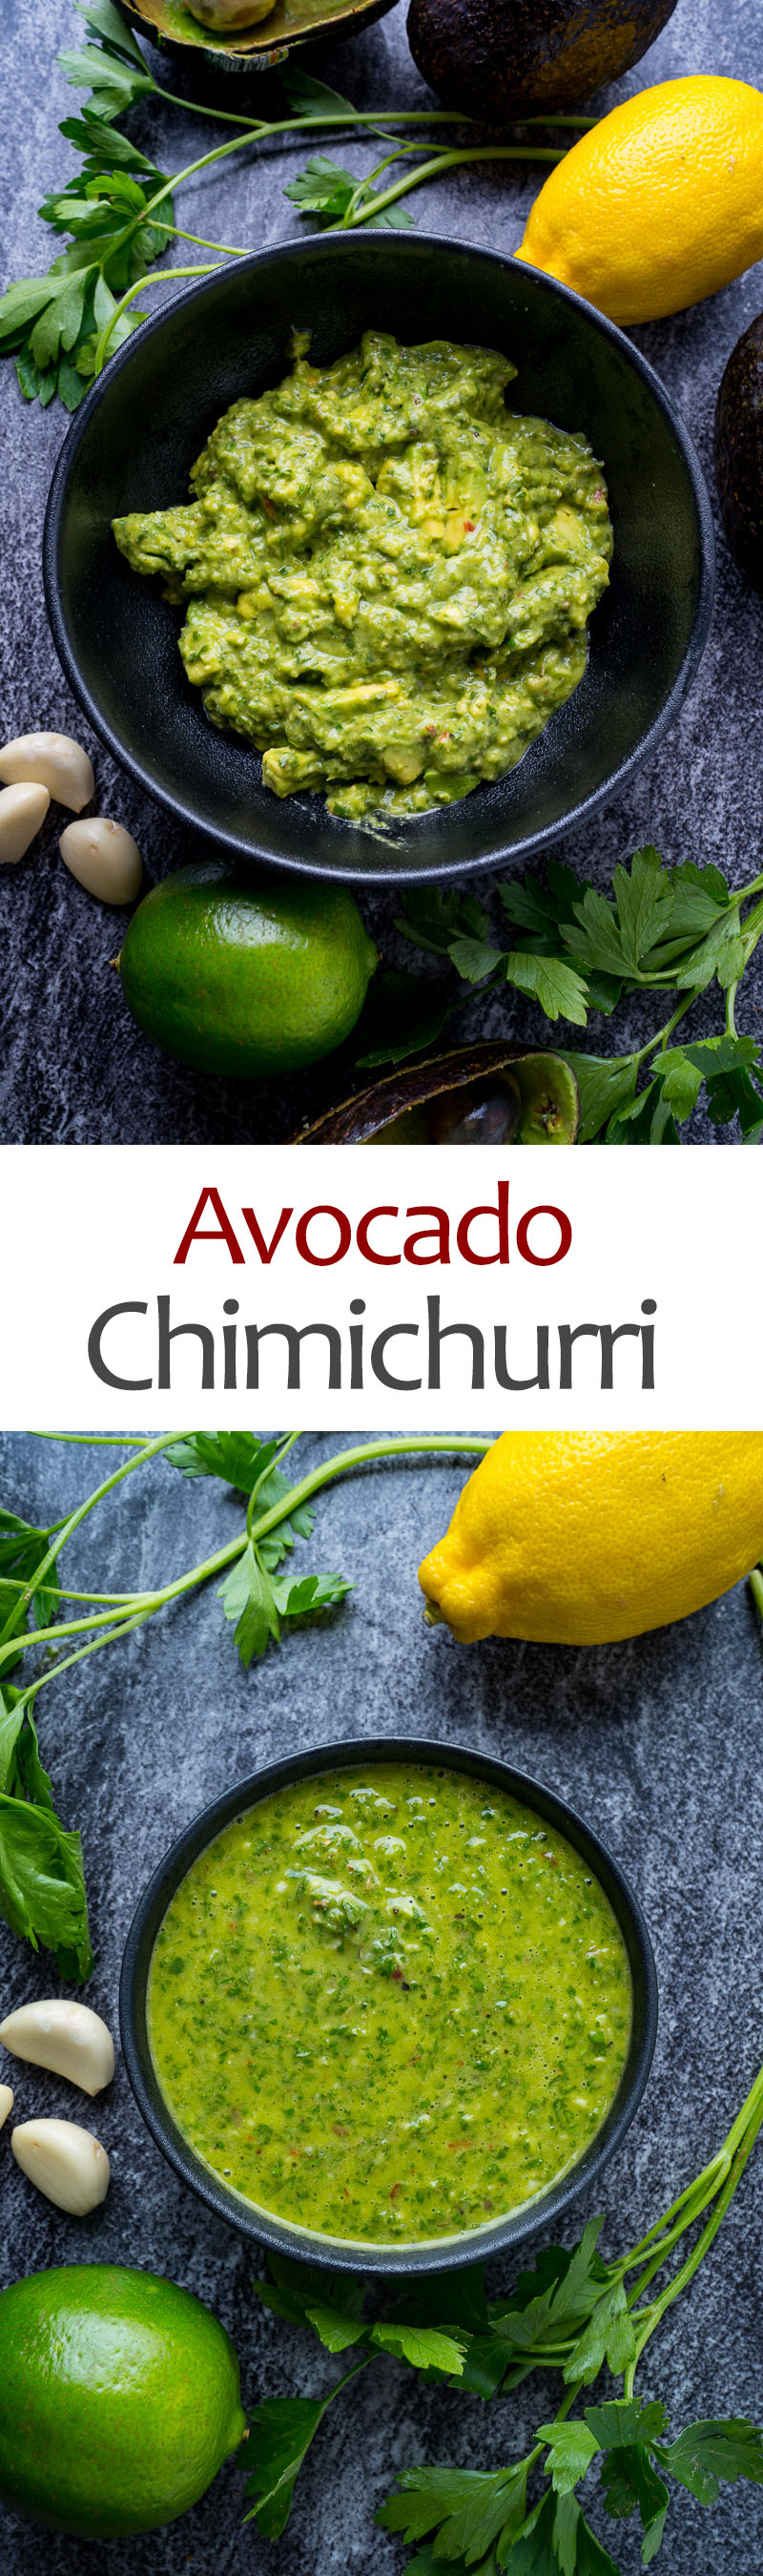 Avocado Chimichurri